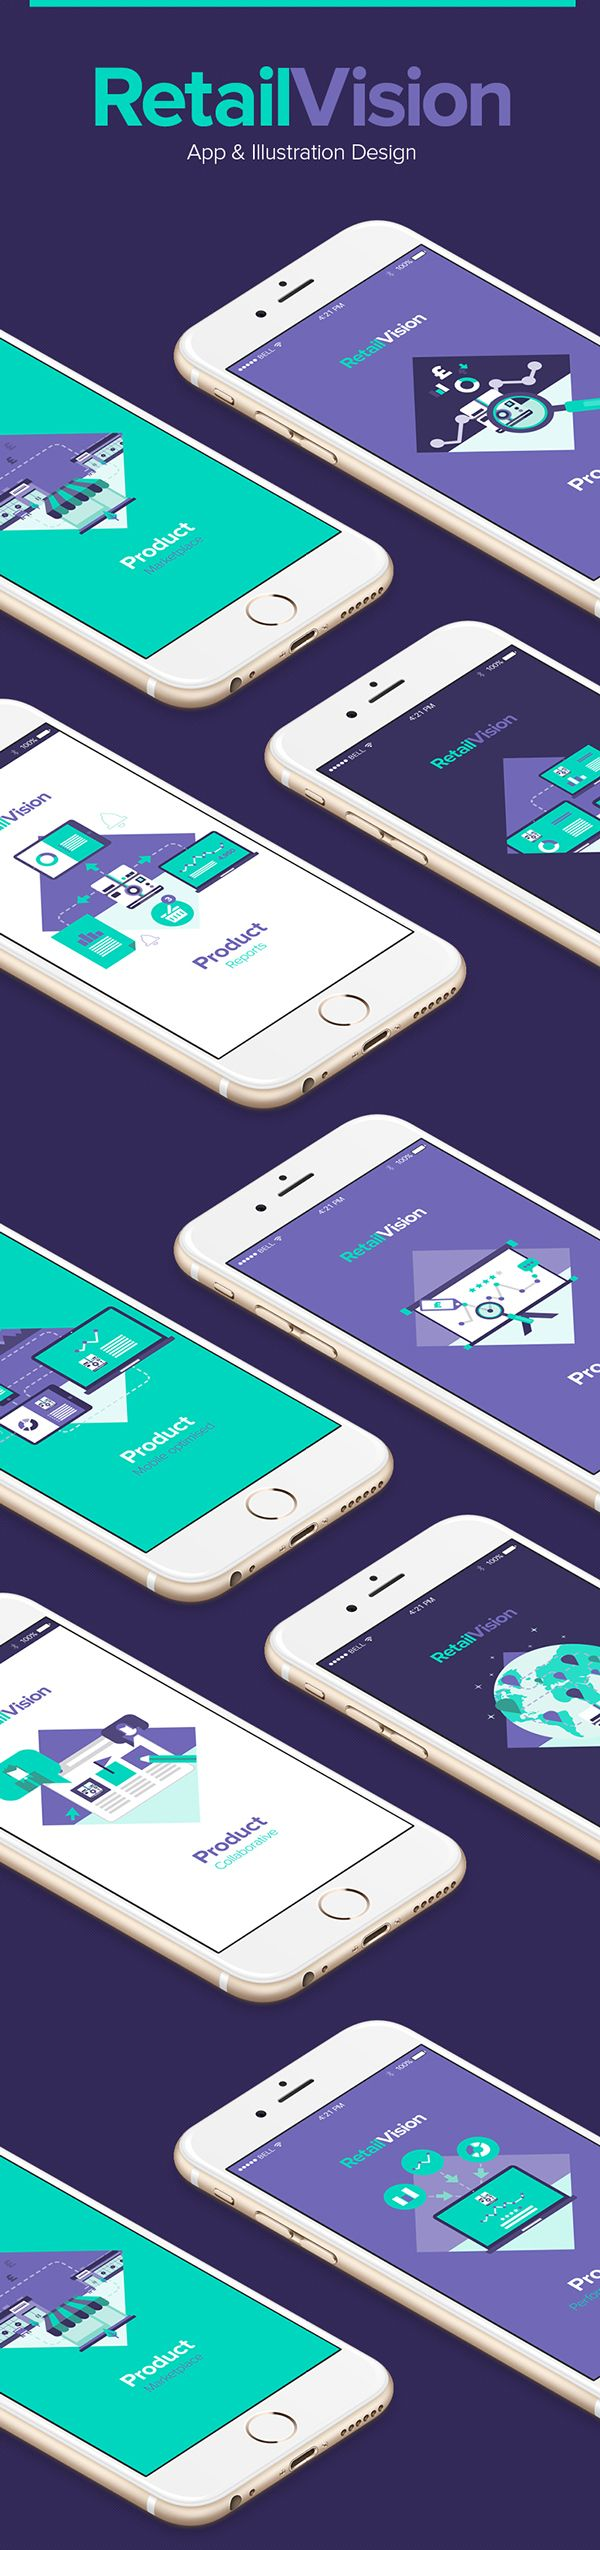 RetailVision // App & Illustration on App Design Served